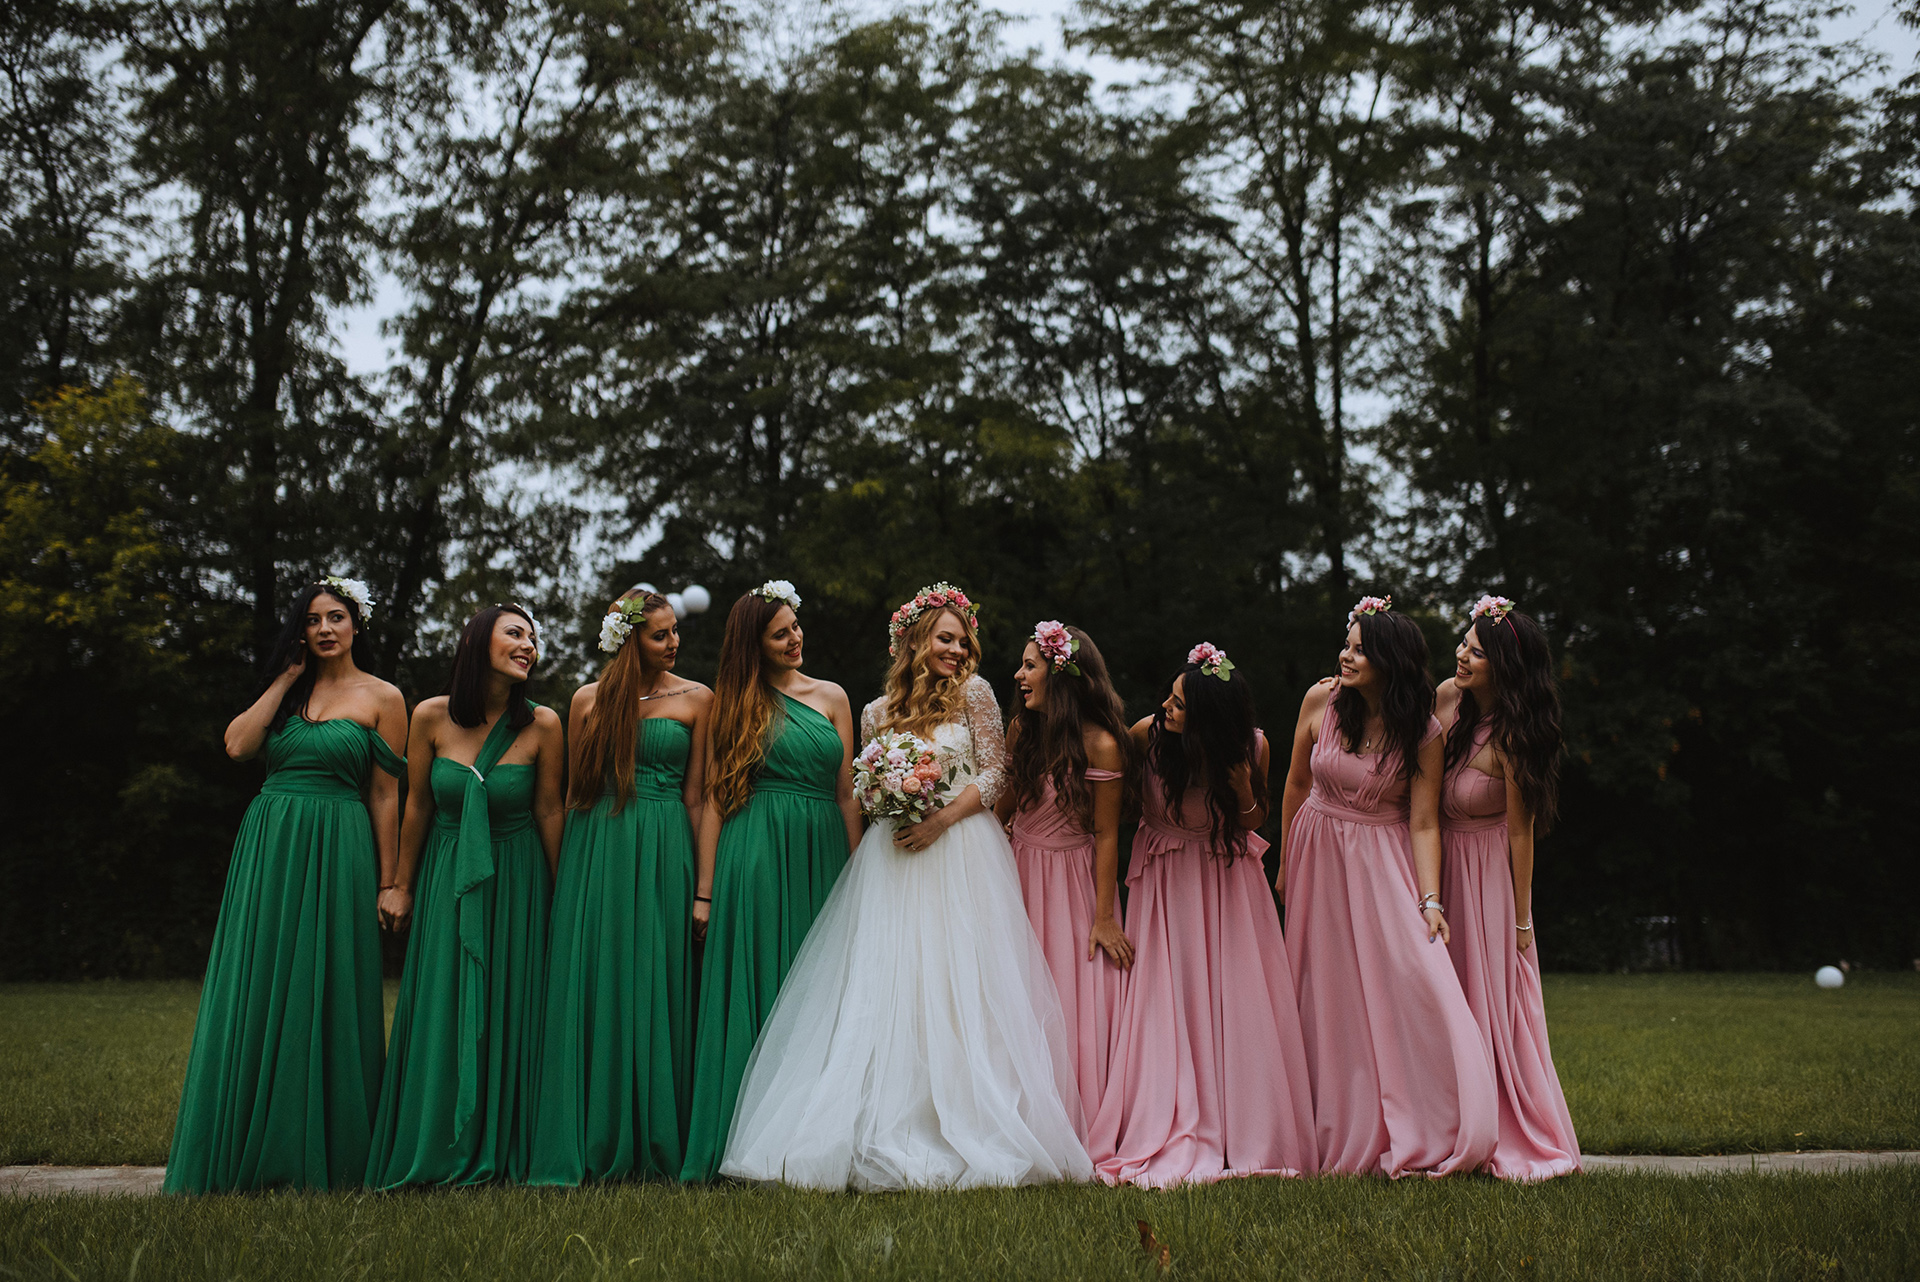 wedding-pink-and-green-bridesmaids-dresses-tulle-and-lace-wedding-dress (11)